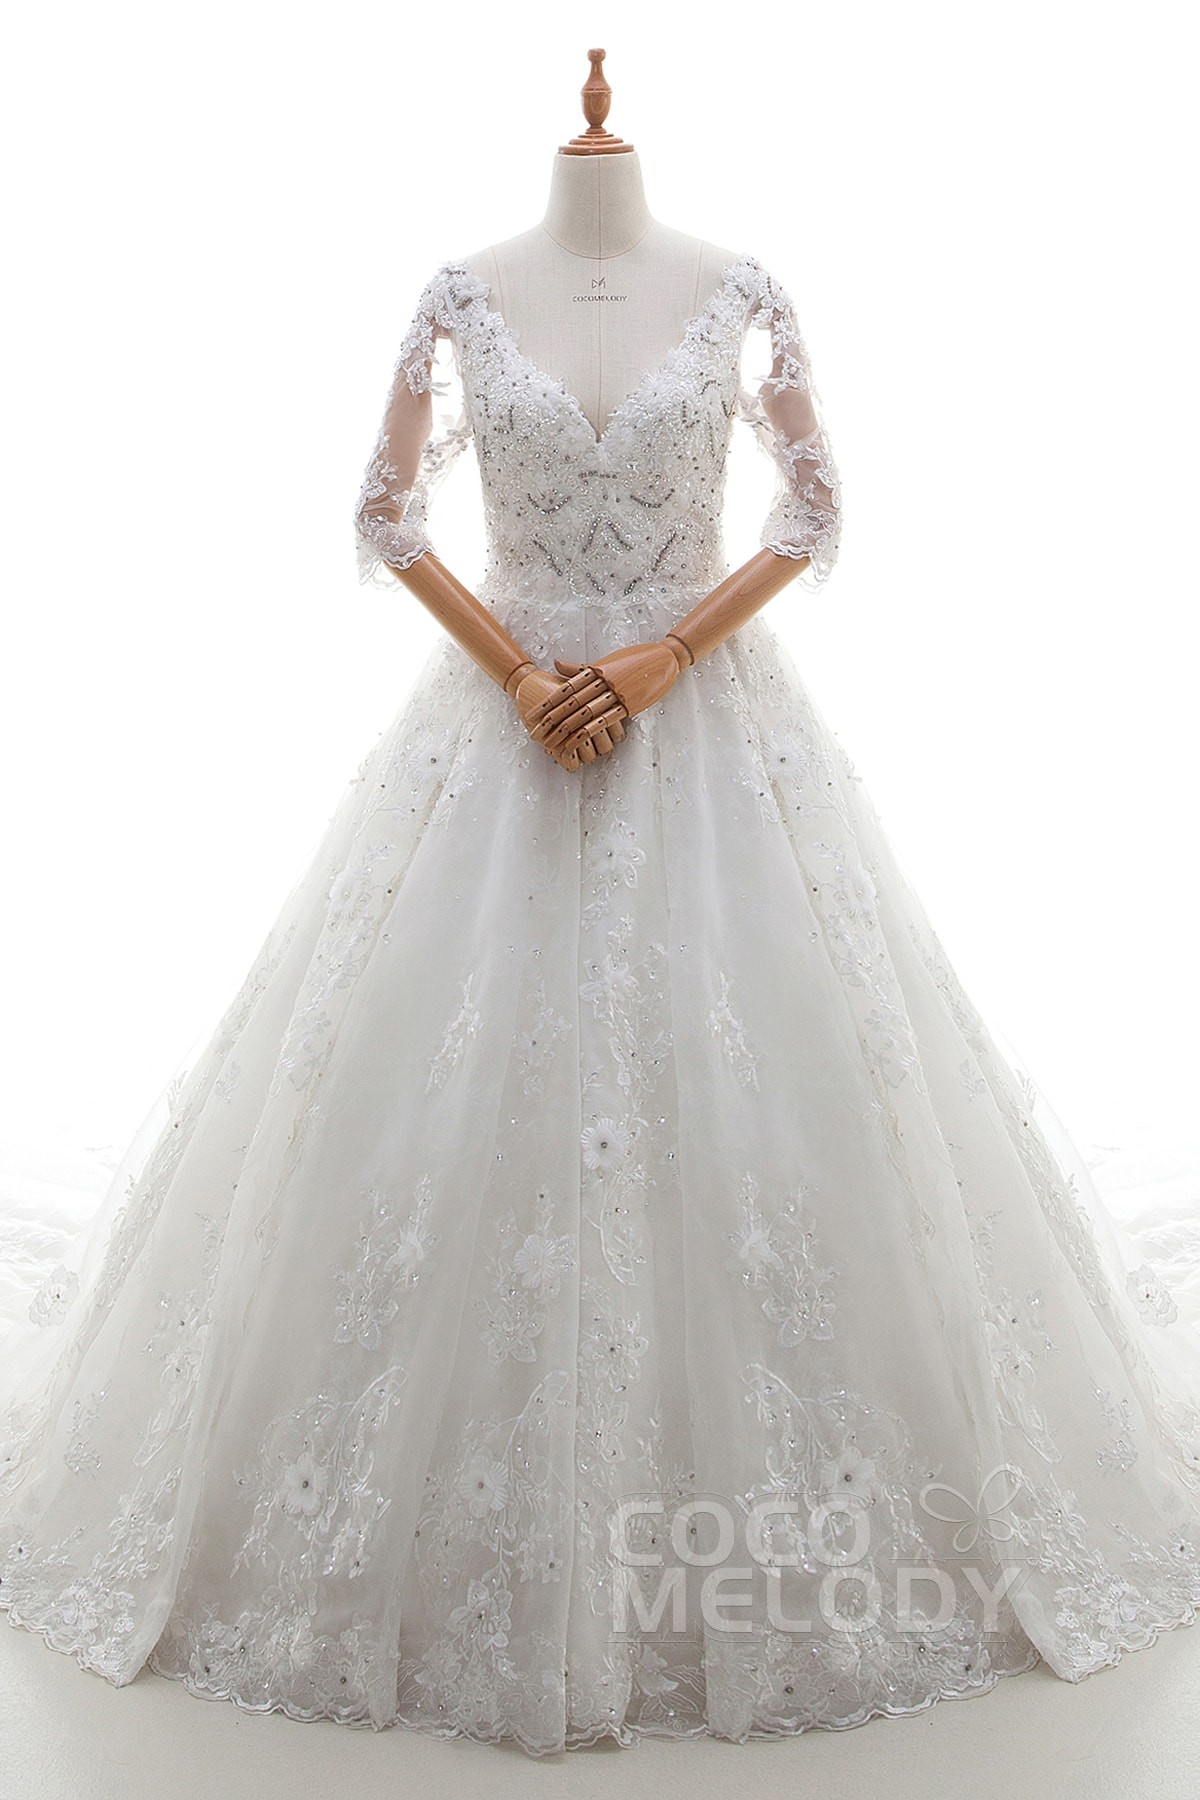 A-Line Cathedral Train Lace and Tulle Wedding Dress LD4397 | Cocomelody